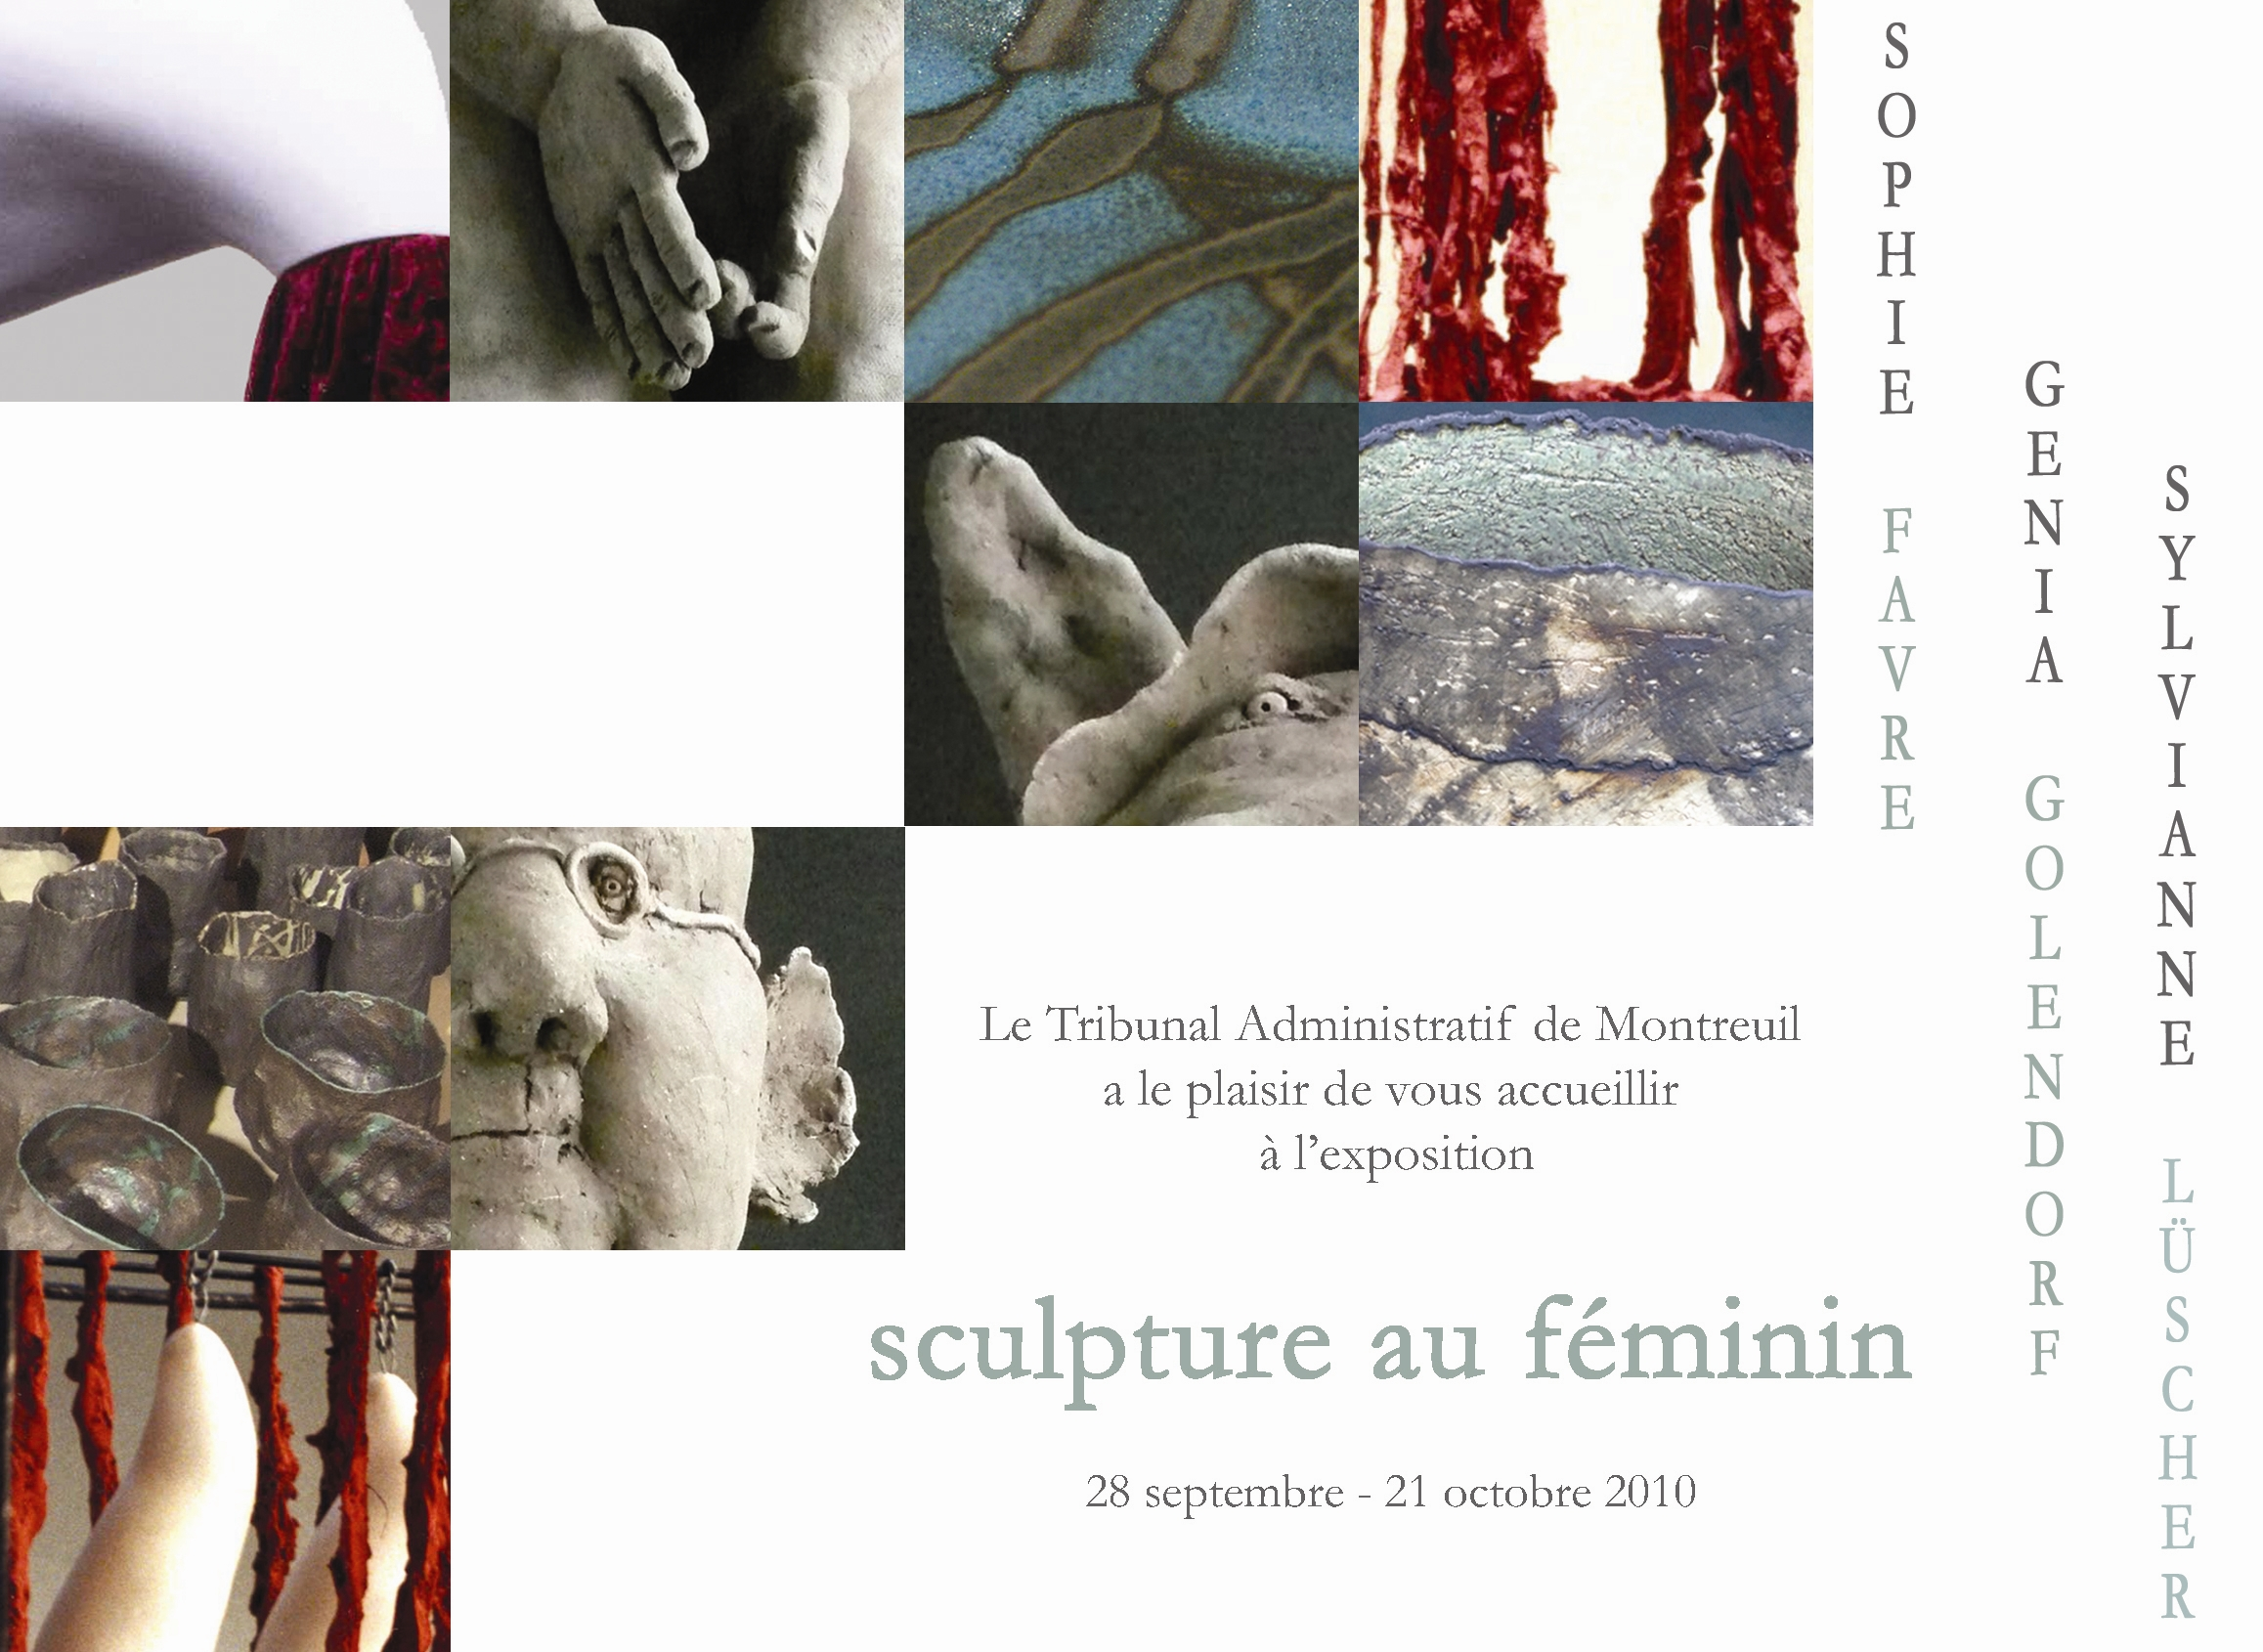 invitation-sculpture-au-feminin